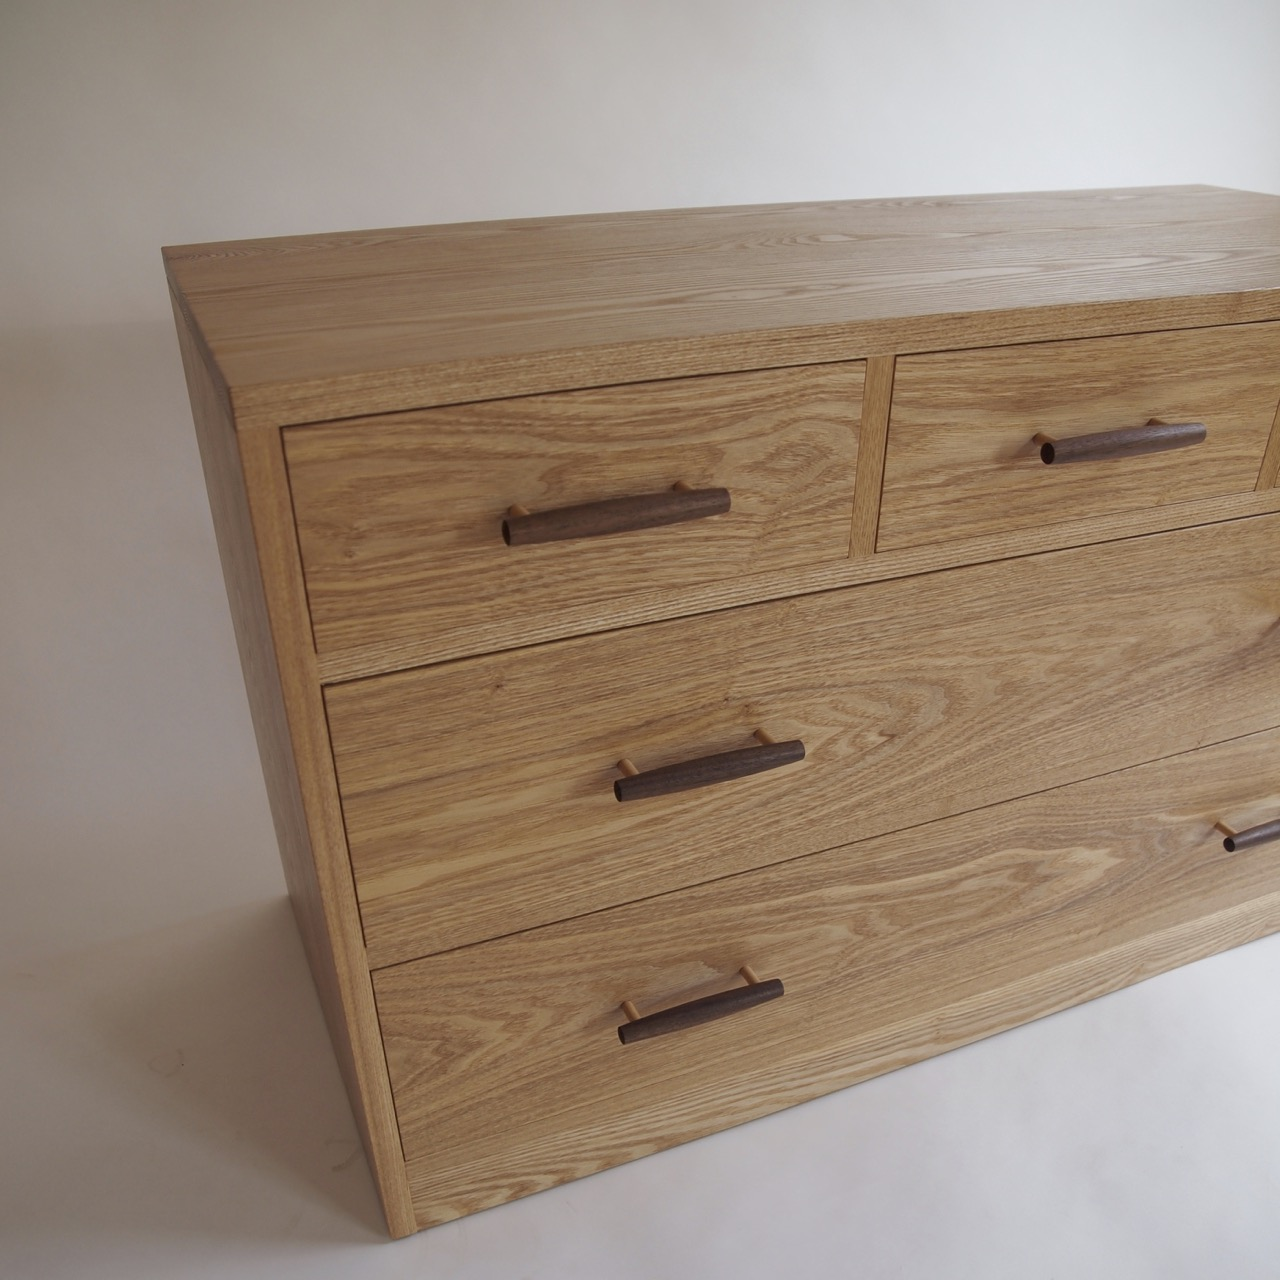 Chest with casters